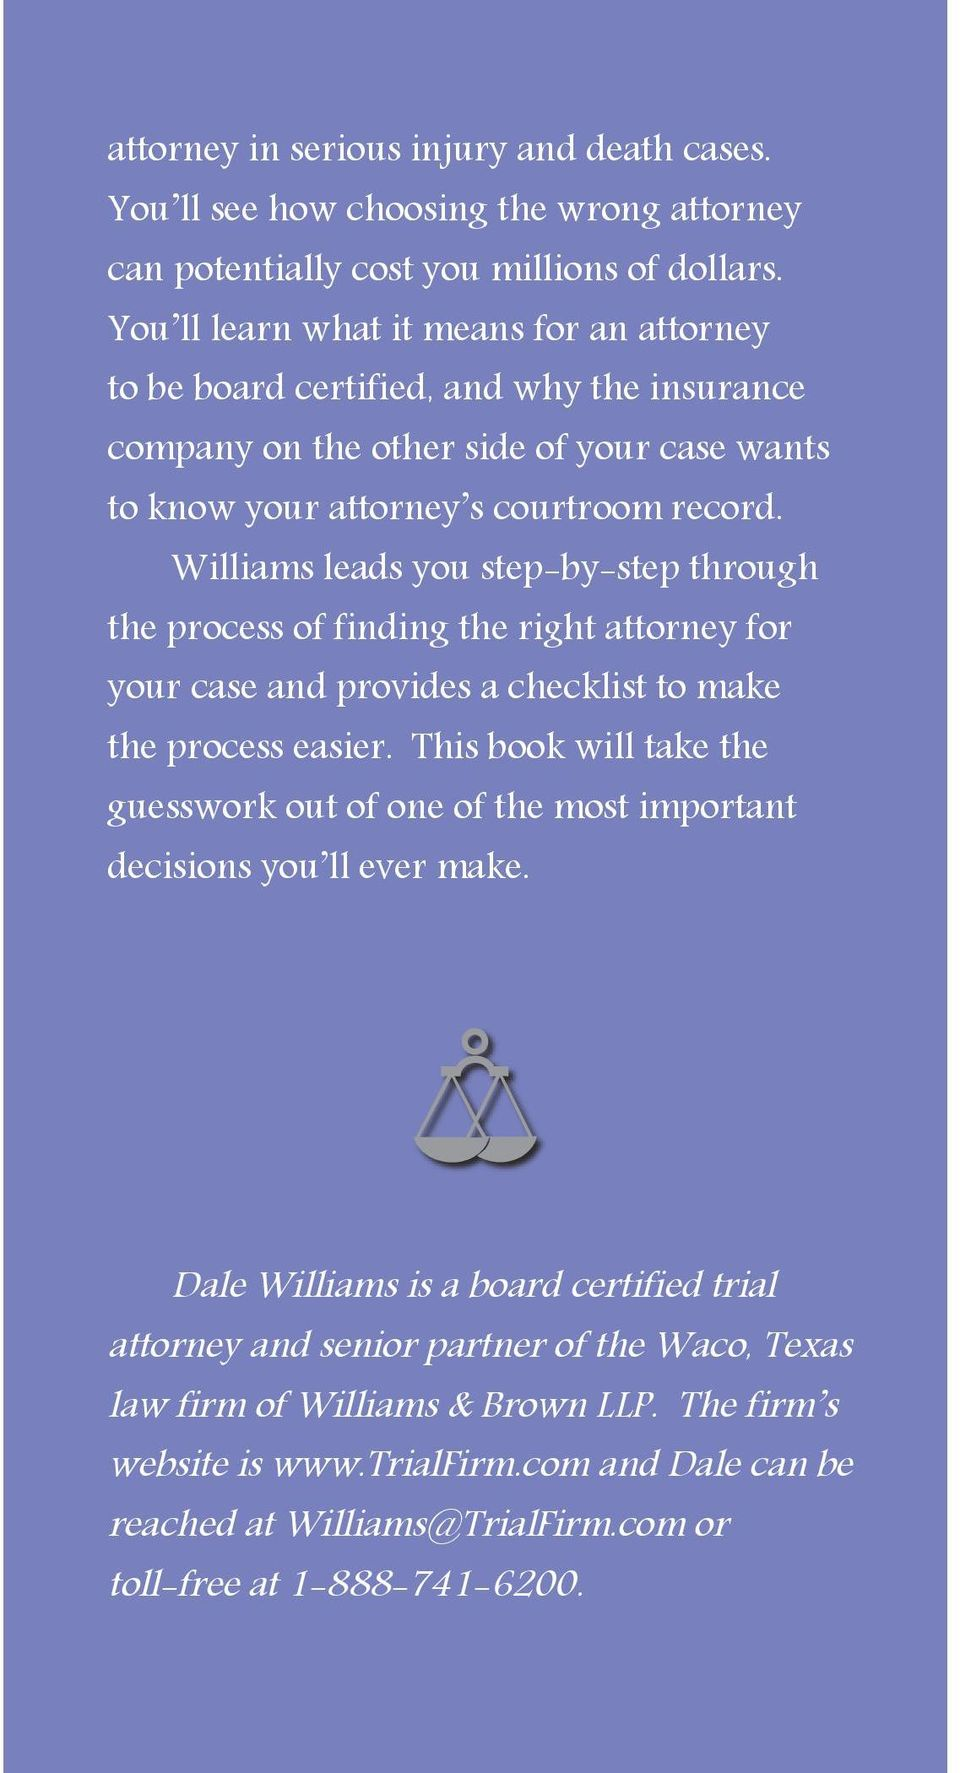 Williams leads you step-by-step through the process of finding the right attorney for your case and provides a checklist to make the process easier.